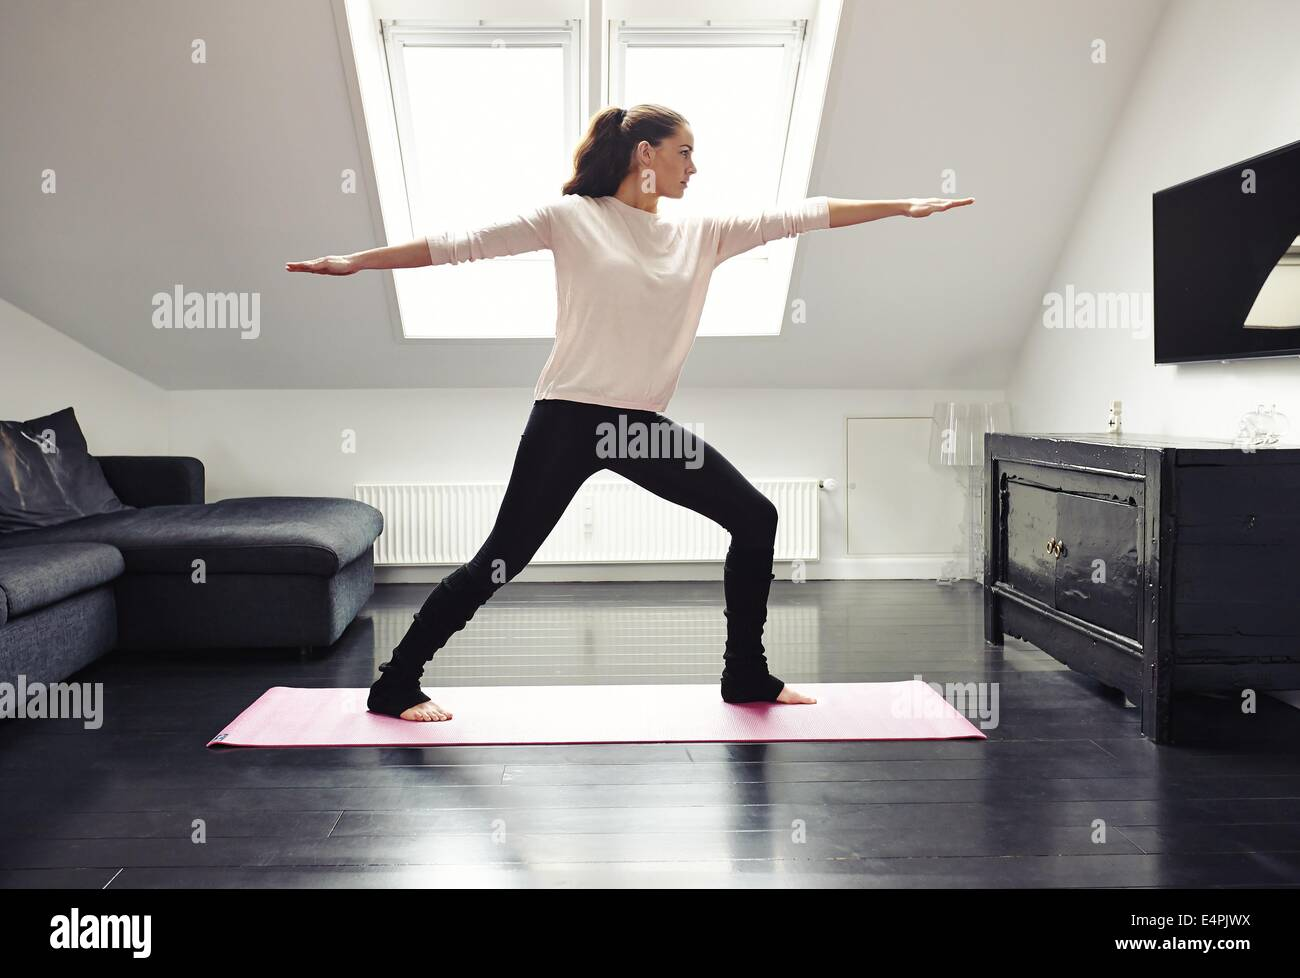 Portrait of a young woman doing yoga on an exercising mat in her living room. Caucasian female model in warrior - Stock Image